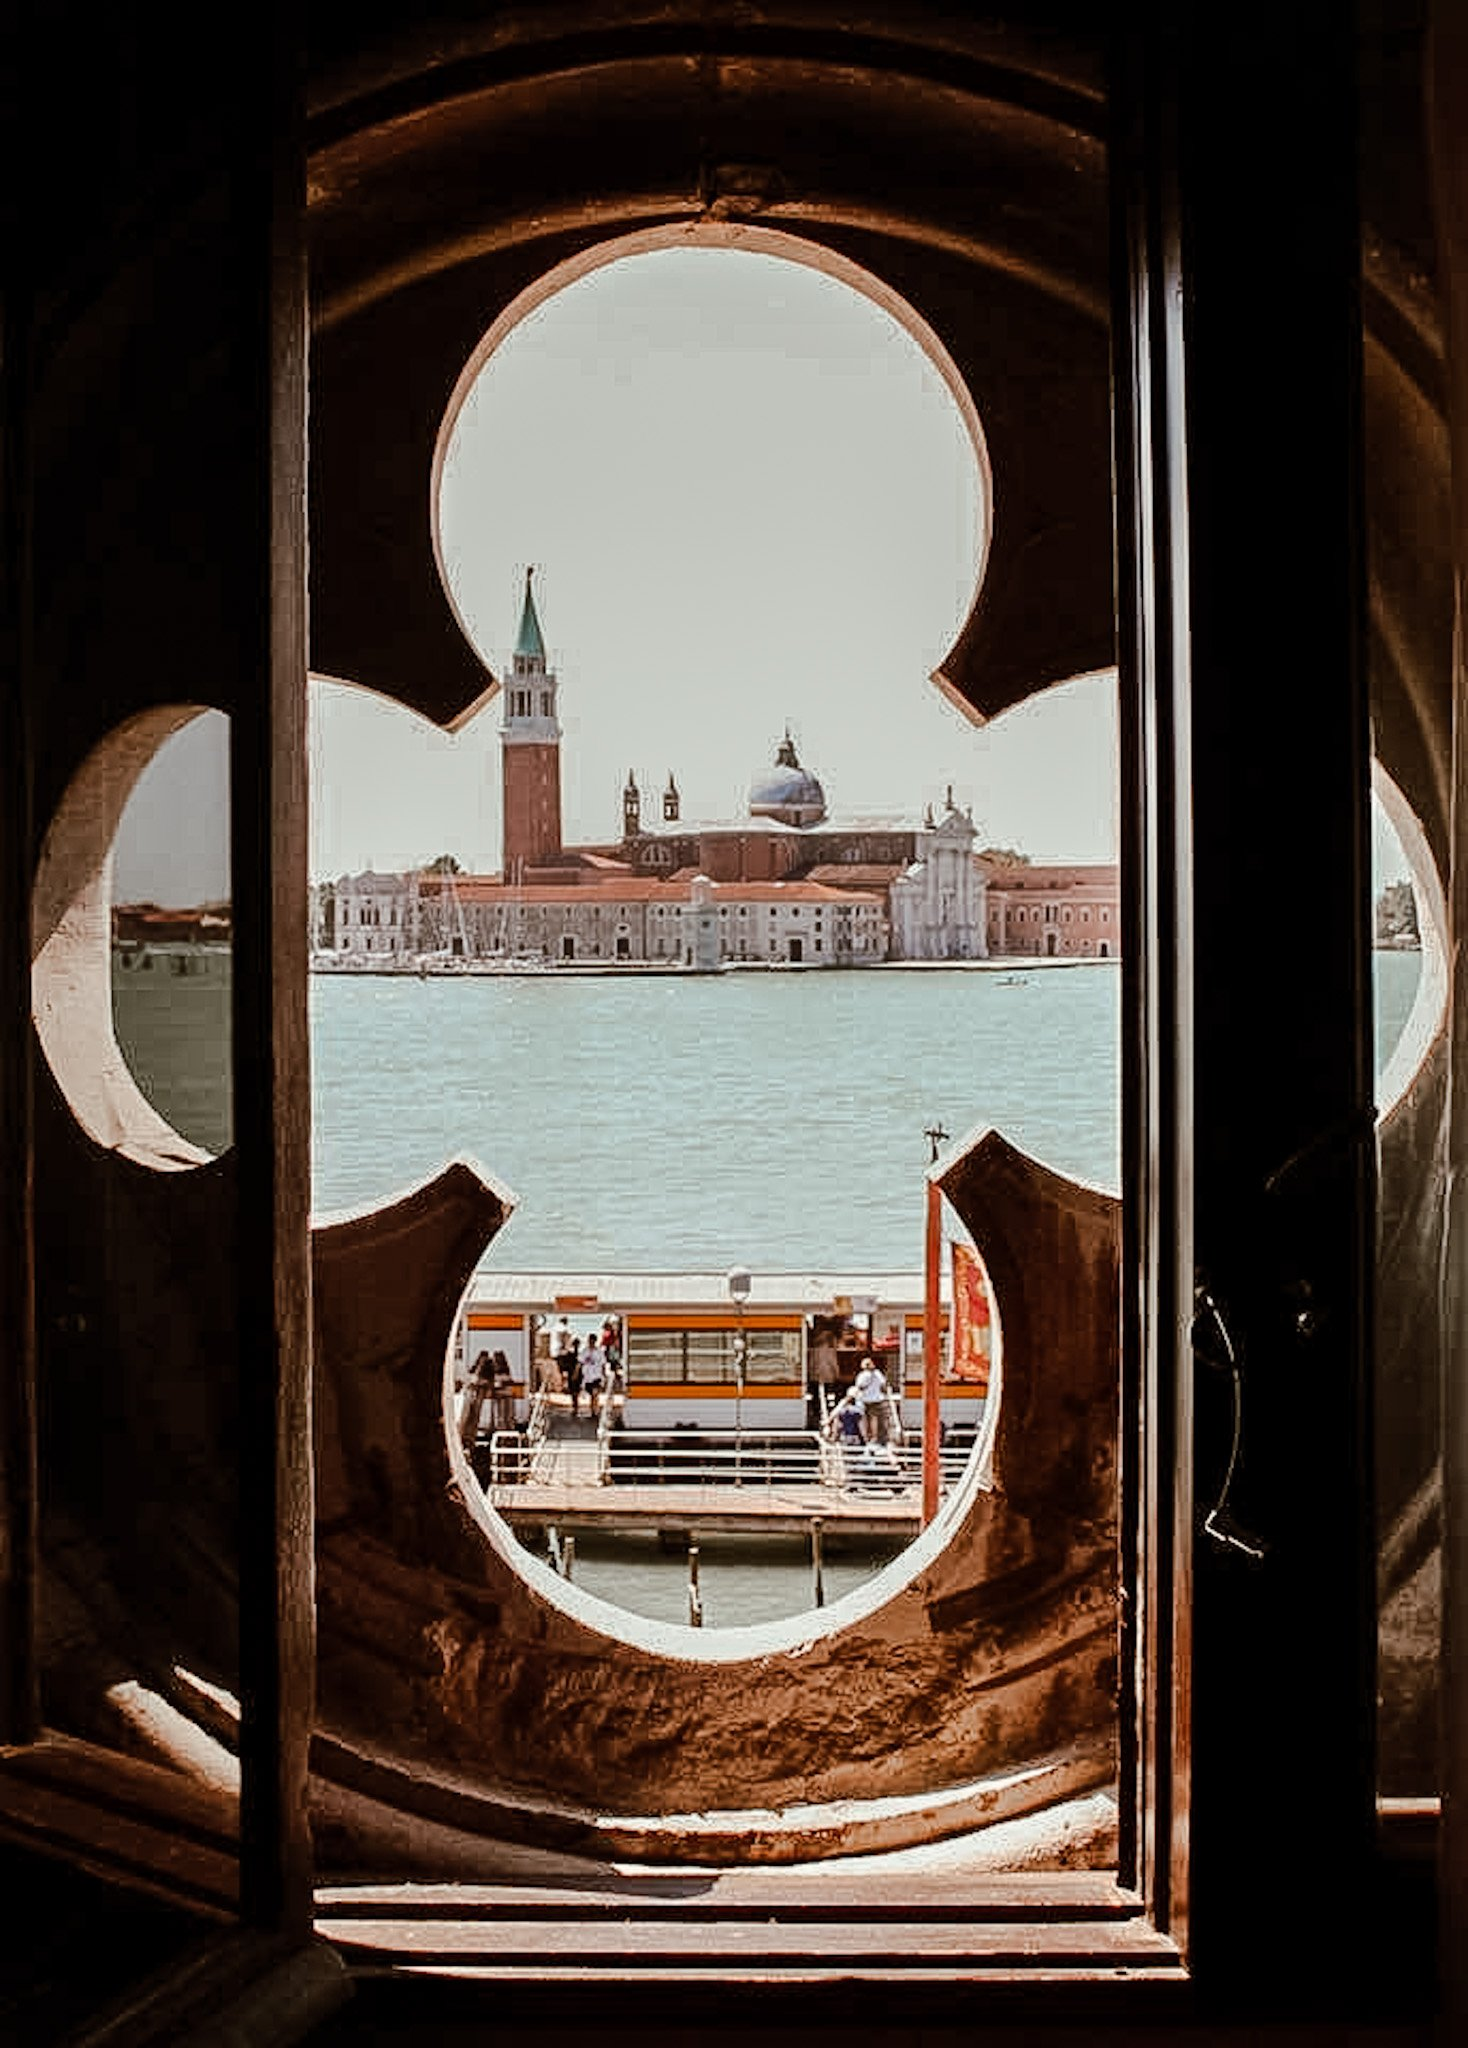 View of Venice Italy from Hotel Danieli